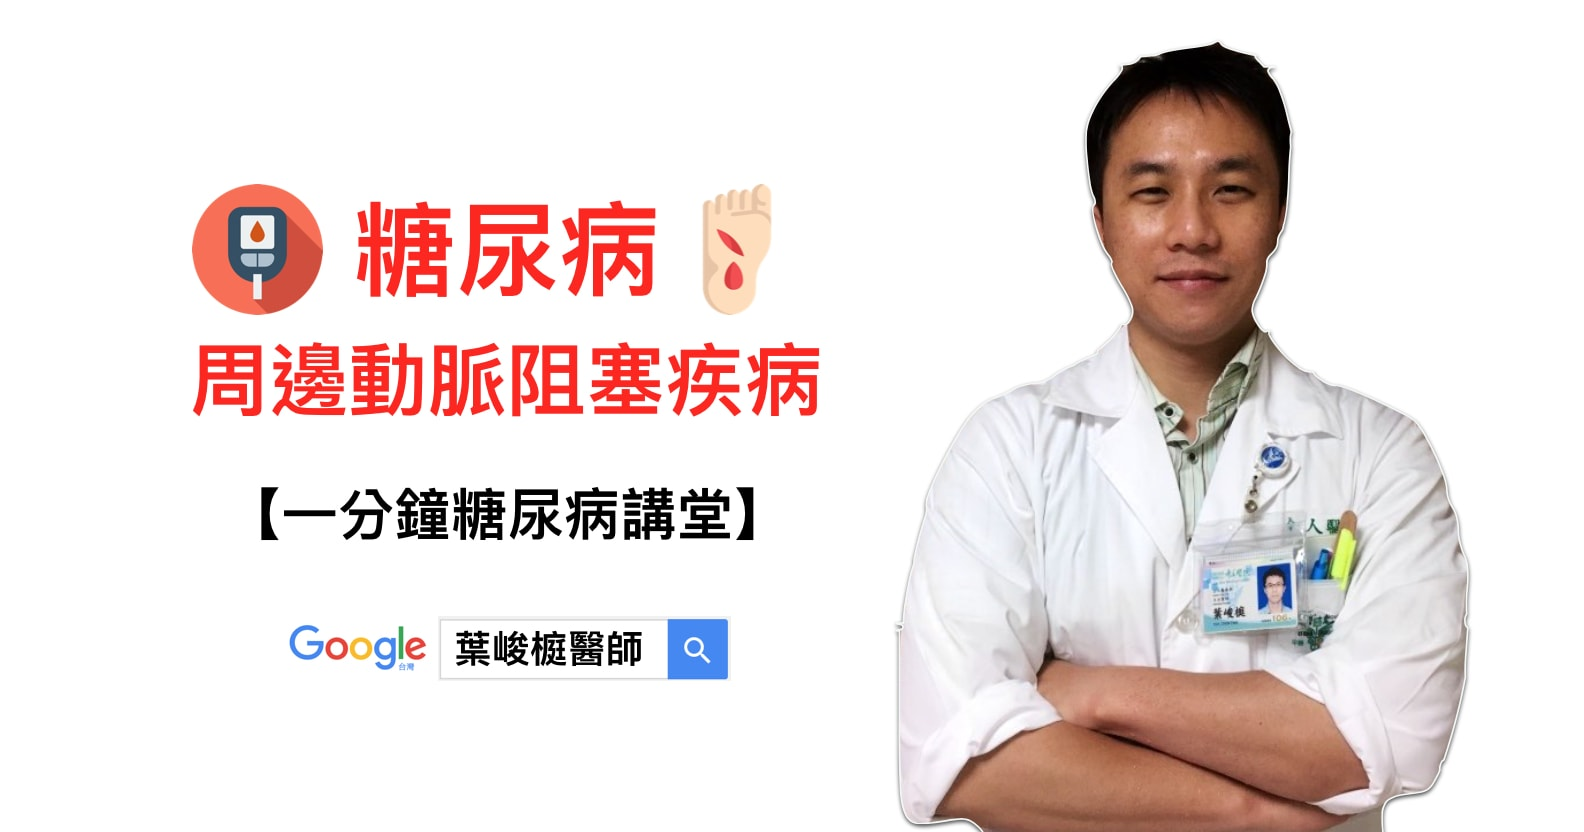 chun-ting-one-minute-talk-about-dm-diabetic-peripheral-arterial-occlusion-disease